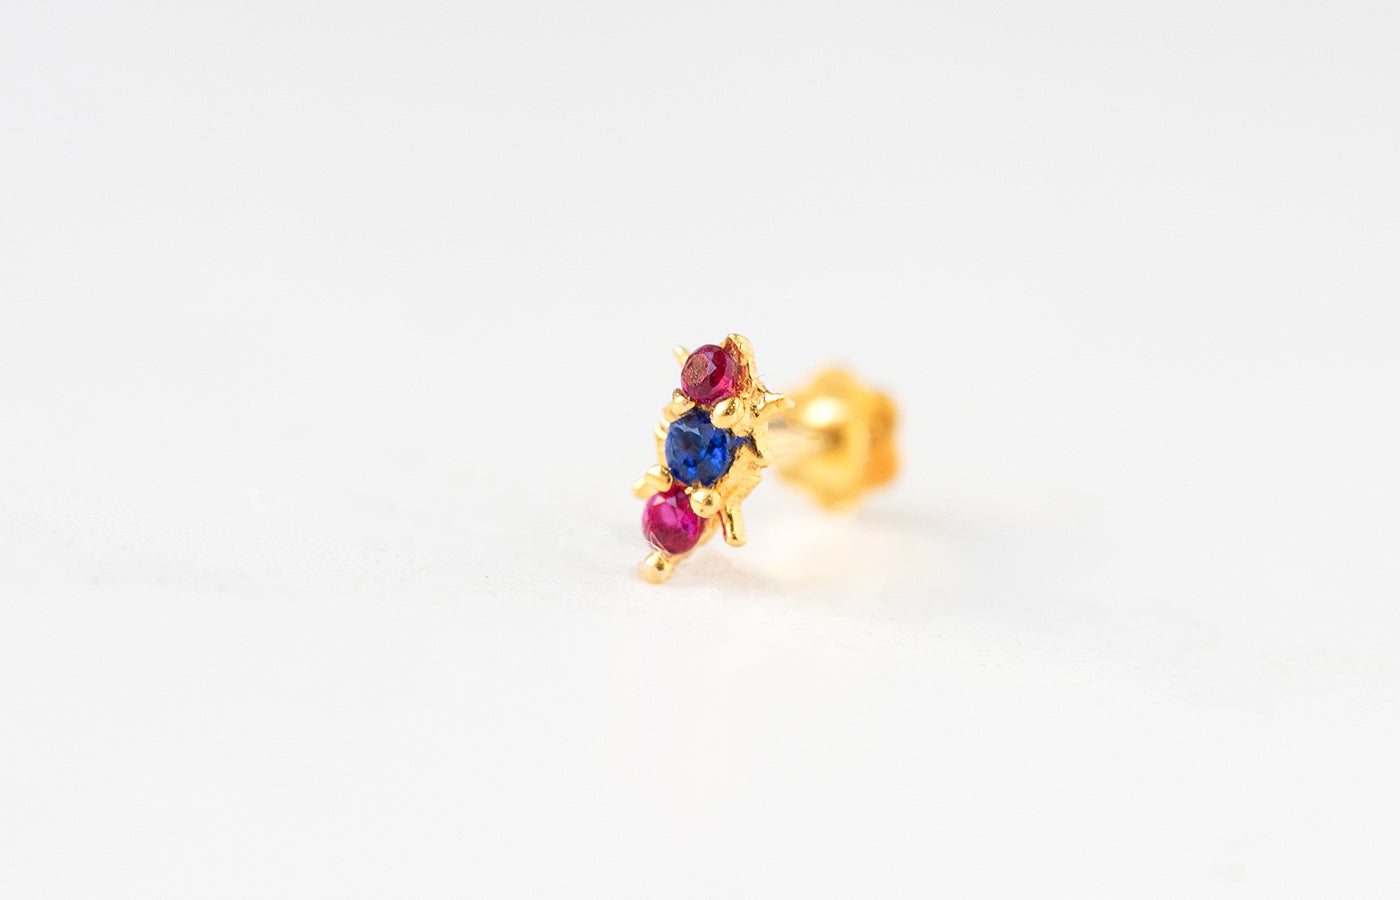 18ct Yellow Gold Screw Back Nose Stud set with Multi-Coloured Cubic Zirconias NIP-4-320g